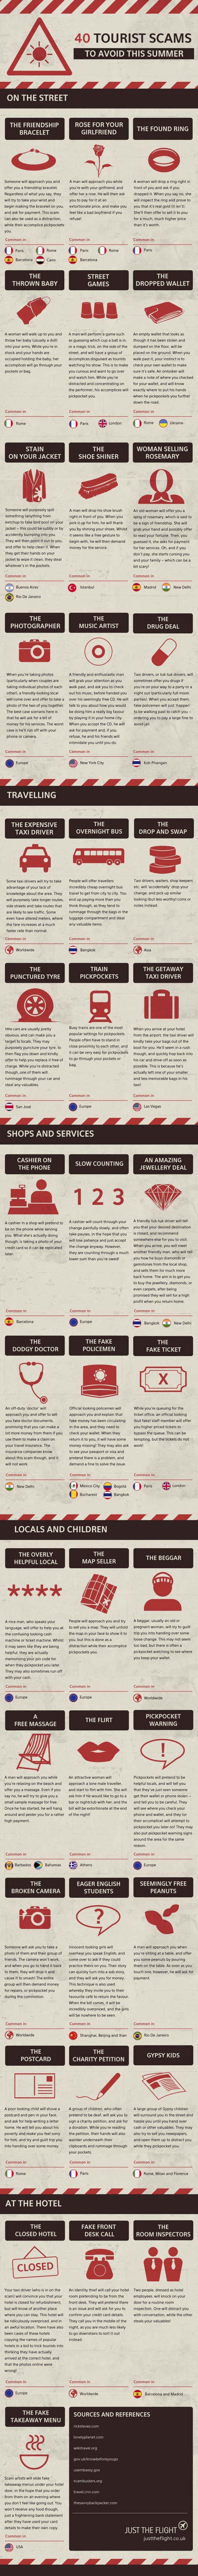 40 Tourist Scams to Avoid - 40 Golpes para Turistas ... Keeping yourself, your money, and your possessions safe during travel is important, but can sometimes be difficult due to scams. This can be especially daunting when you stick out as a tourist, making you an easy mark to spot for local tricksters. avoiding scams, work at home scams, making money scams